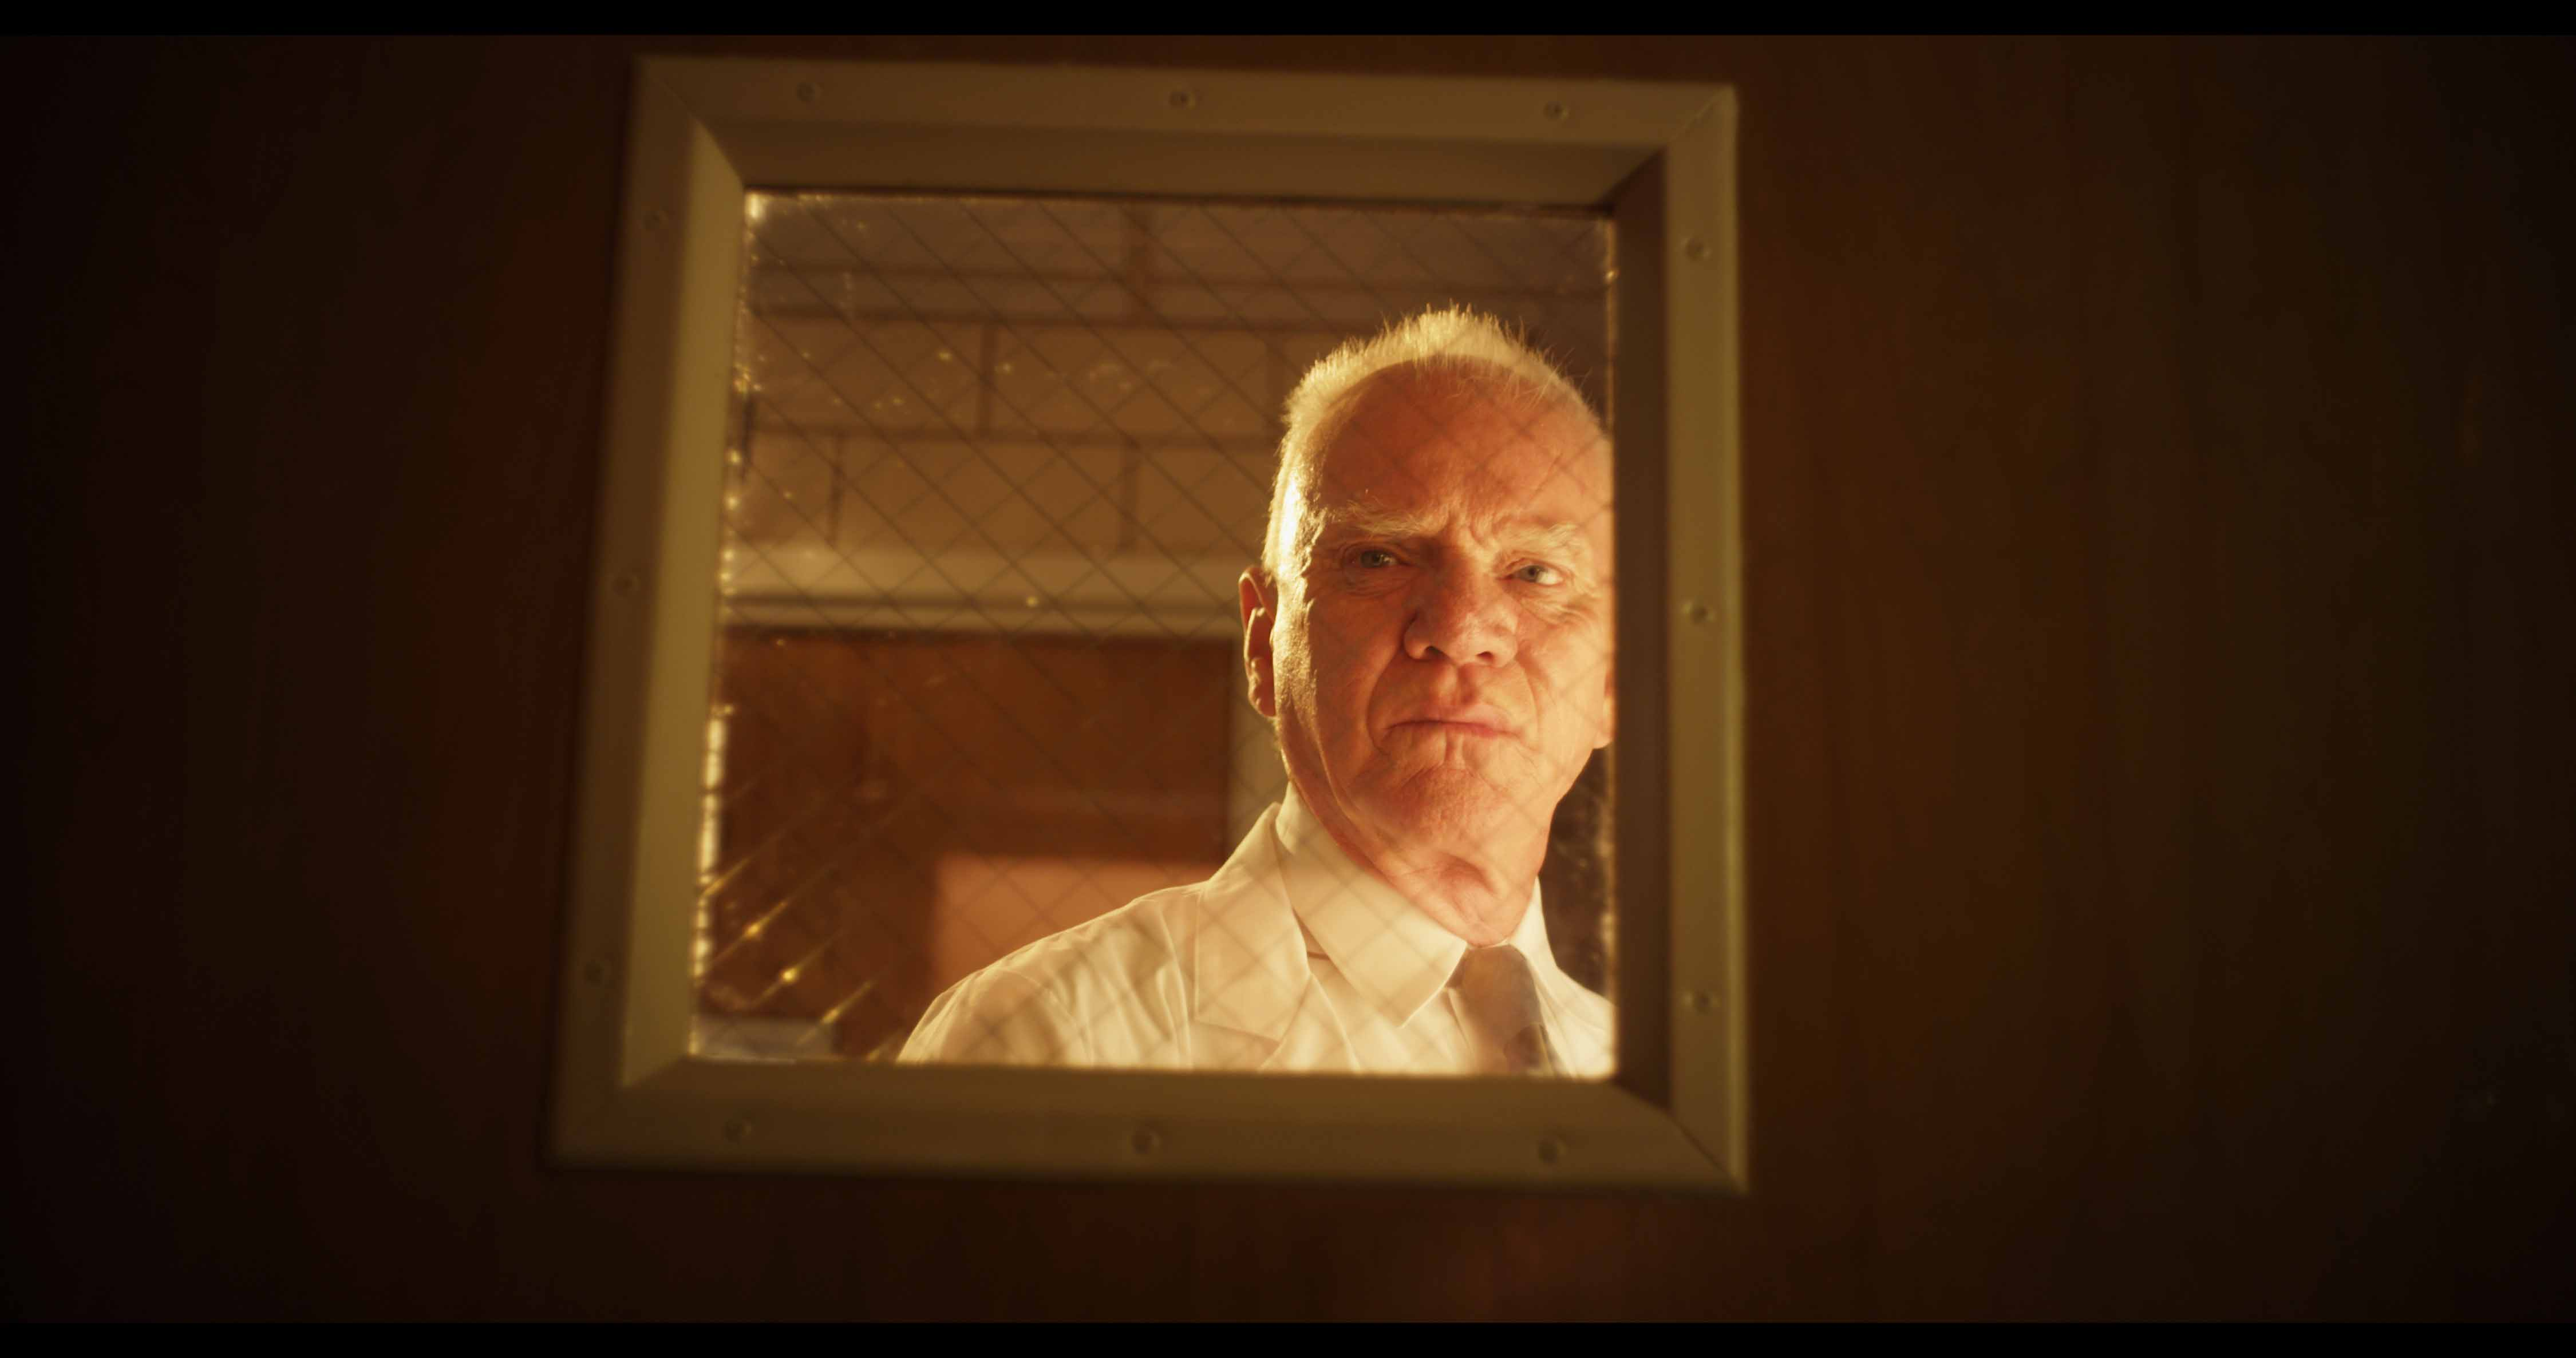 Sanitarium Malcolm McDowell New Trailer and Photos From Malcom McDowells Sanitarium Released